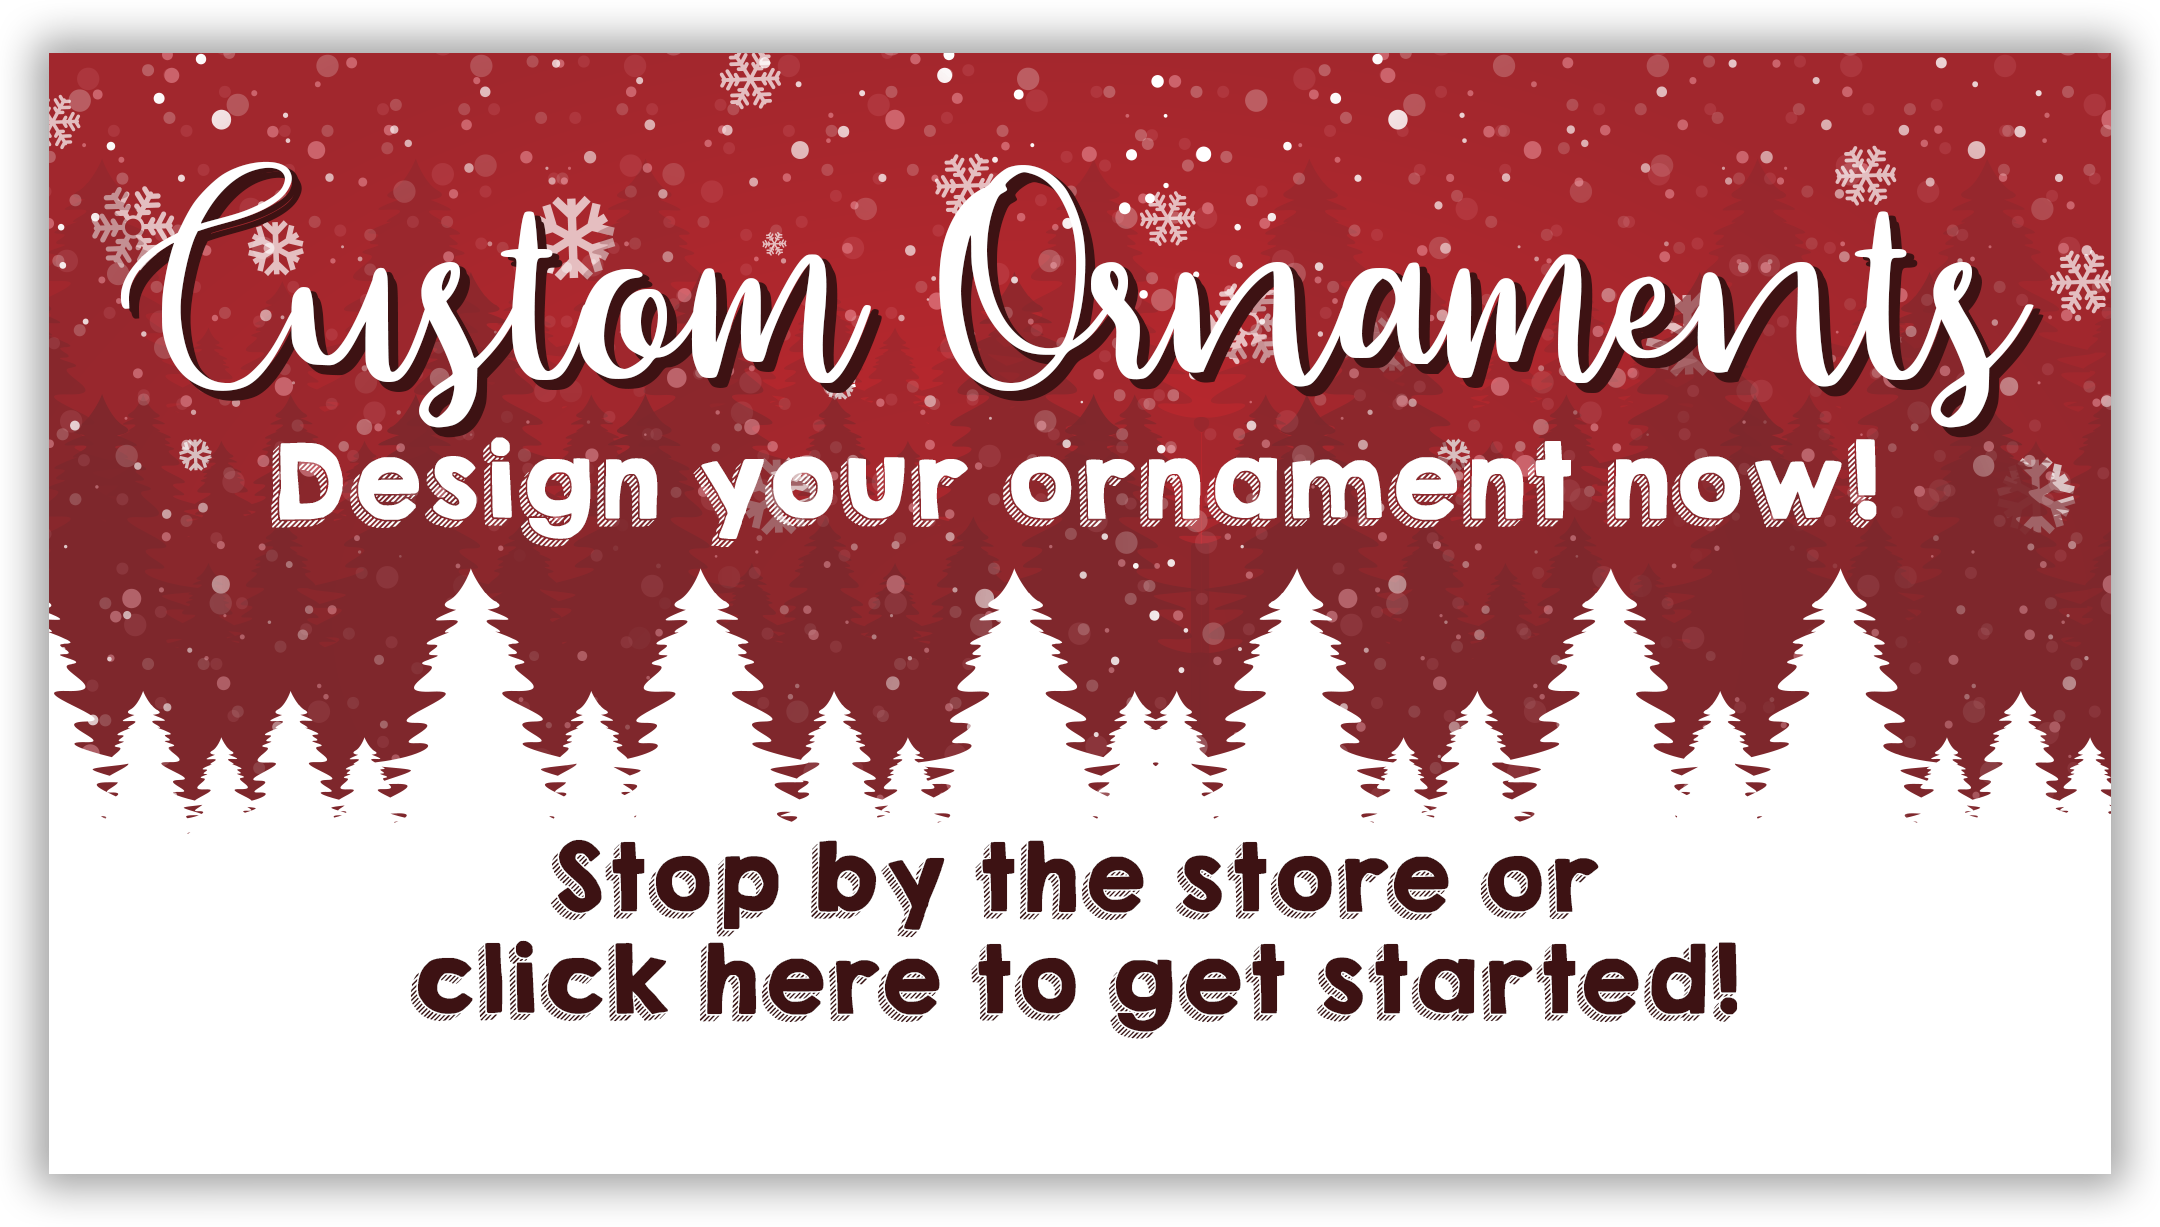 Ask us about our custom ornaments!